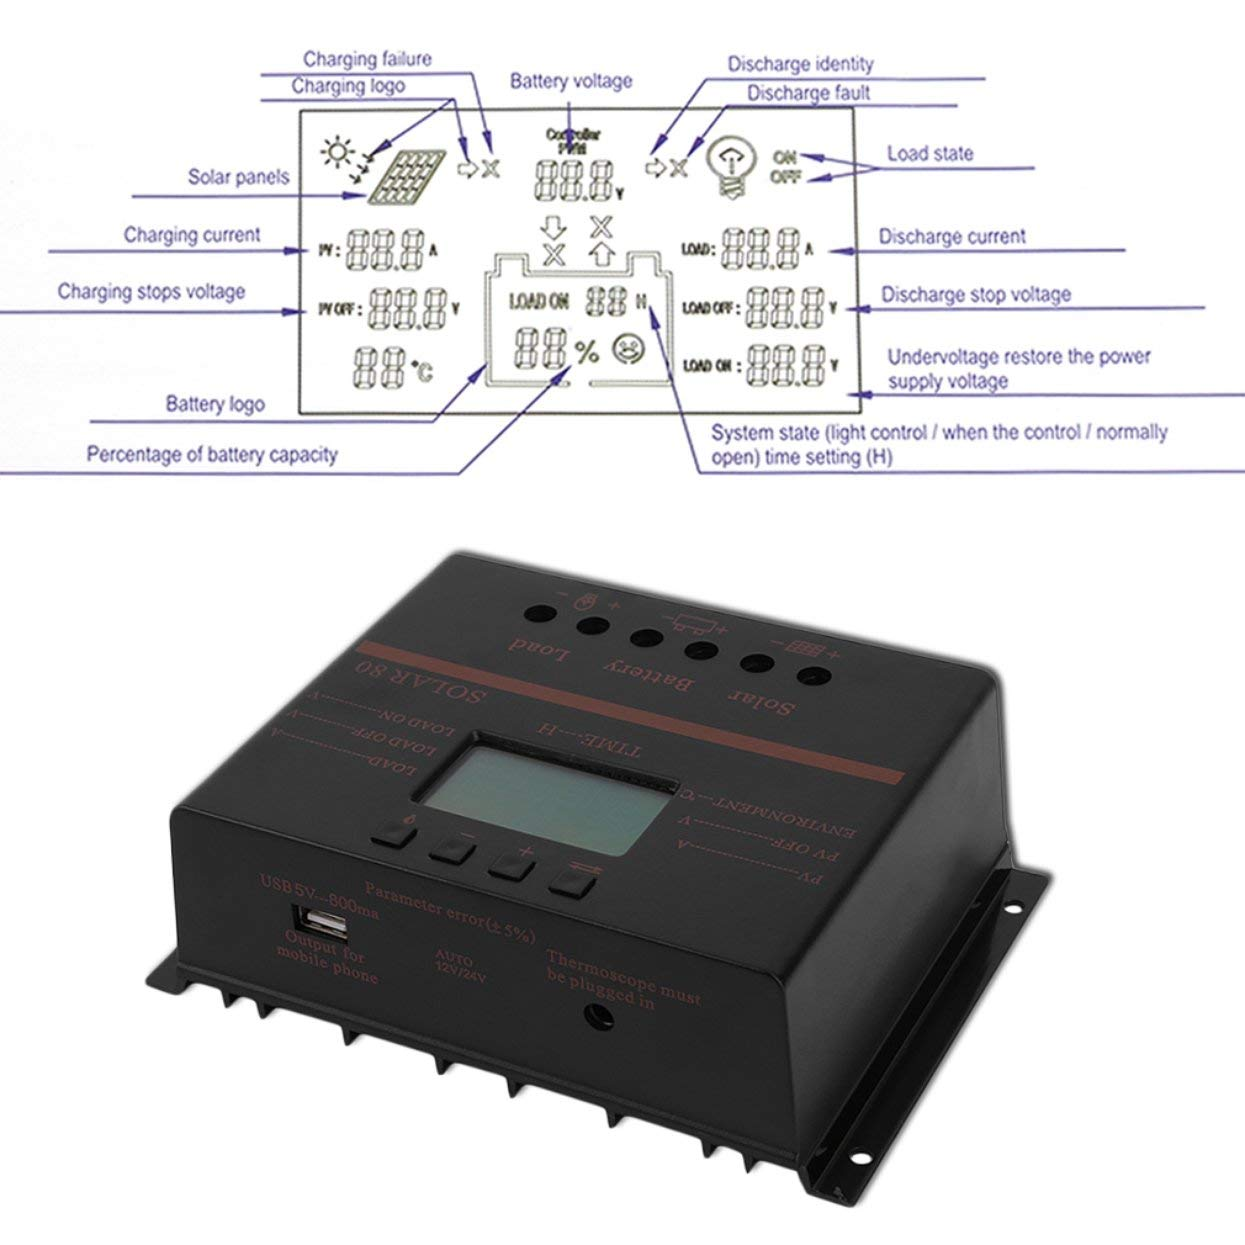 AMPM24US Solar Charger 12V 24V 80A LCD with USB Solar Battery Panel Regulator Discharge PWM Intelligent Solar Controller by AMPM24US (Image #7)